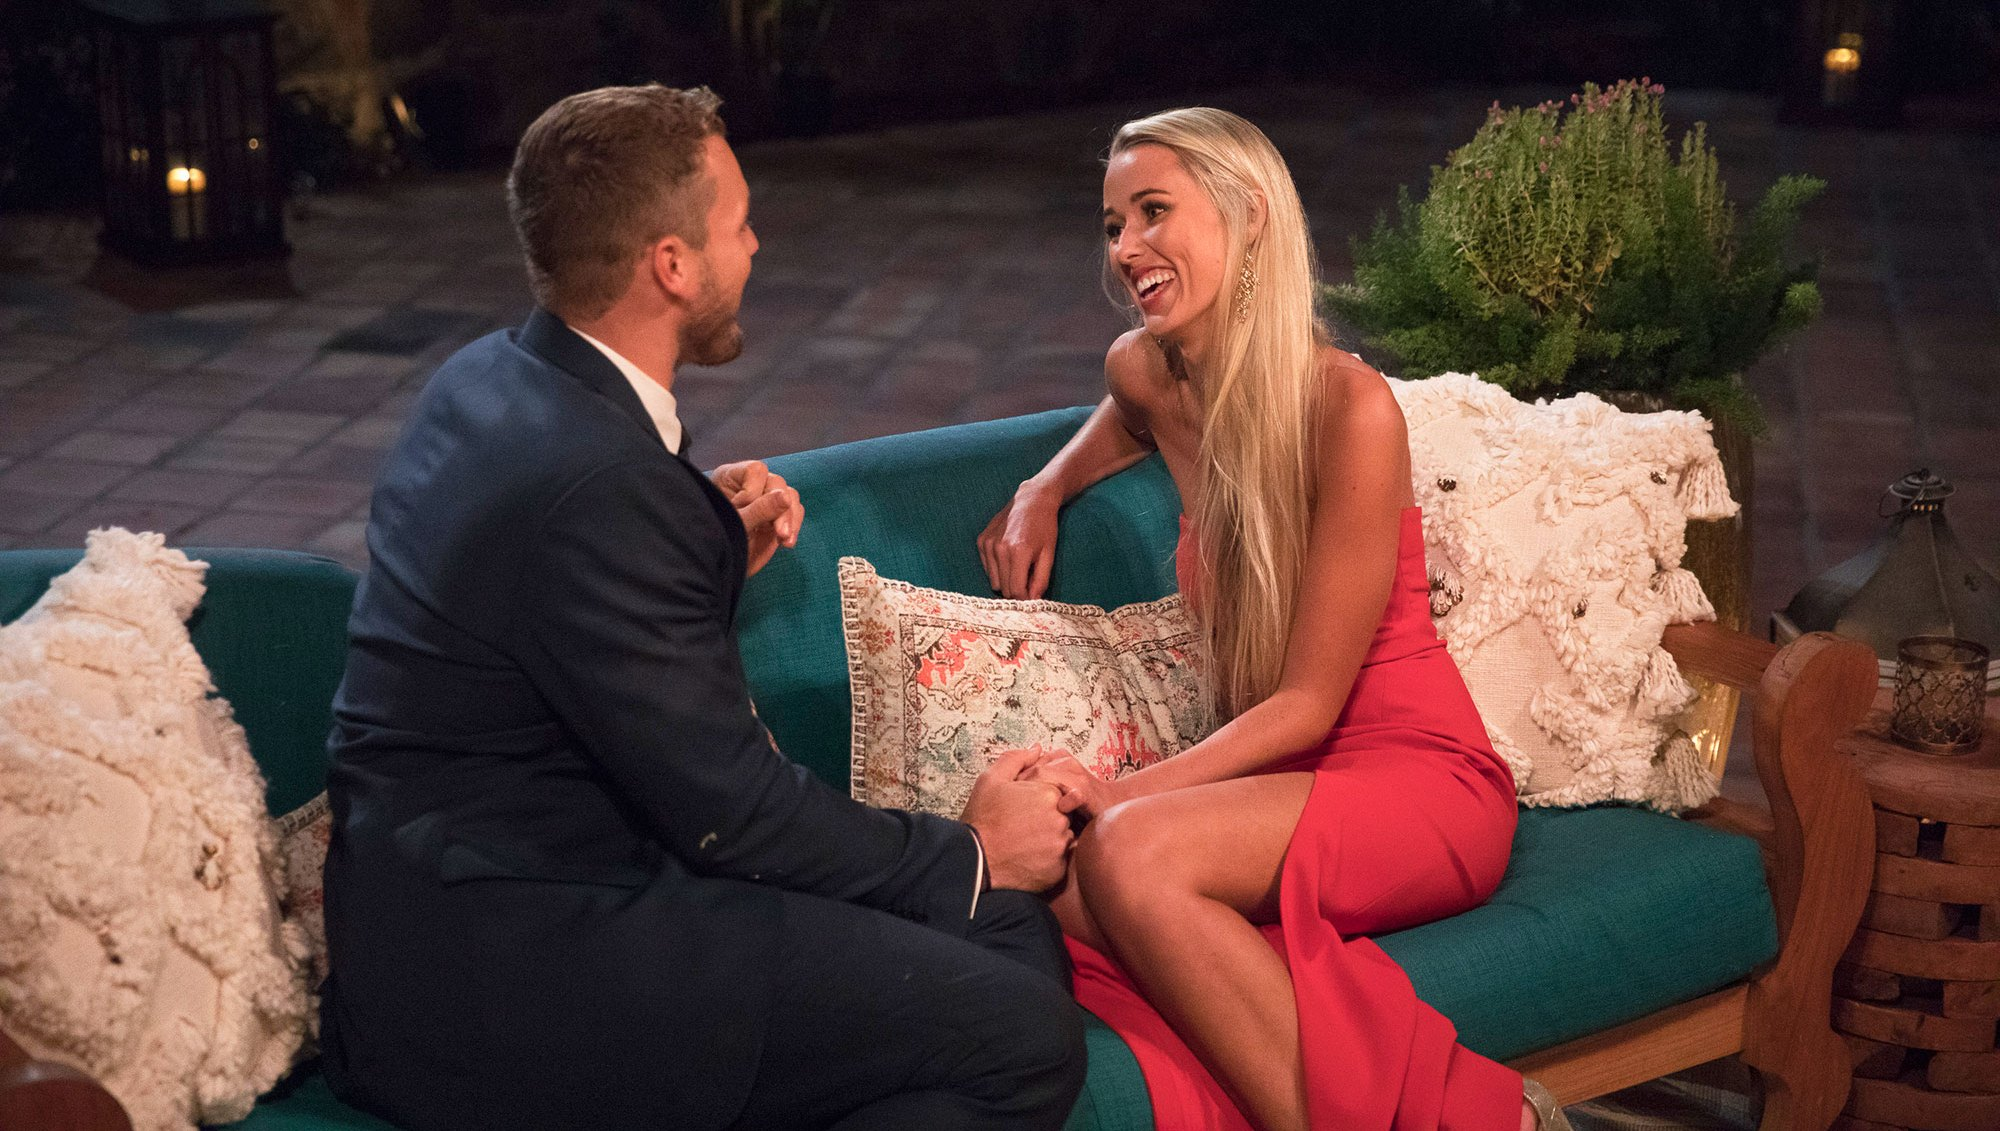 Has The Bachelor's Heather Martin Kissed Anyone Since Colton Underwood?